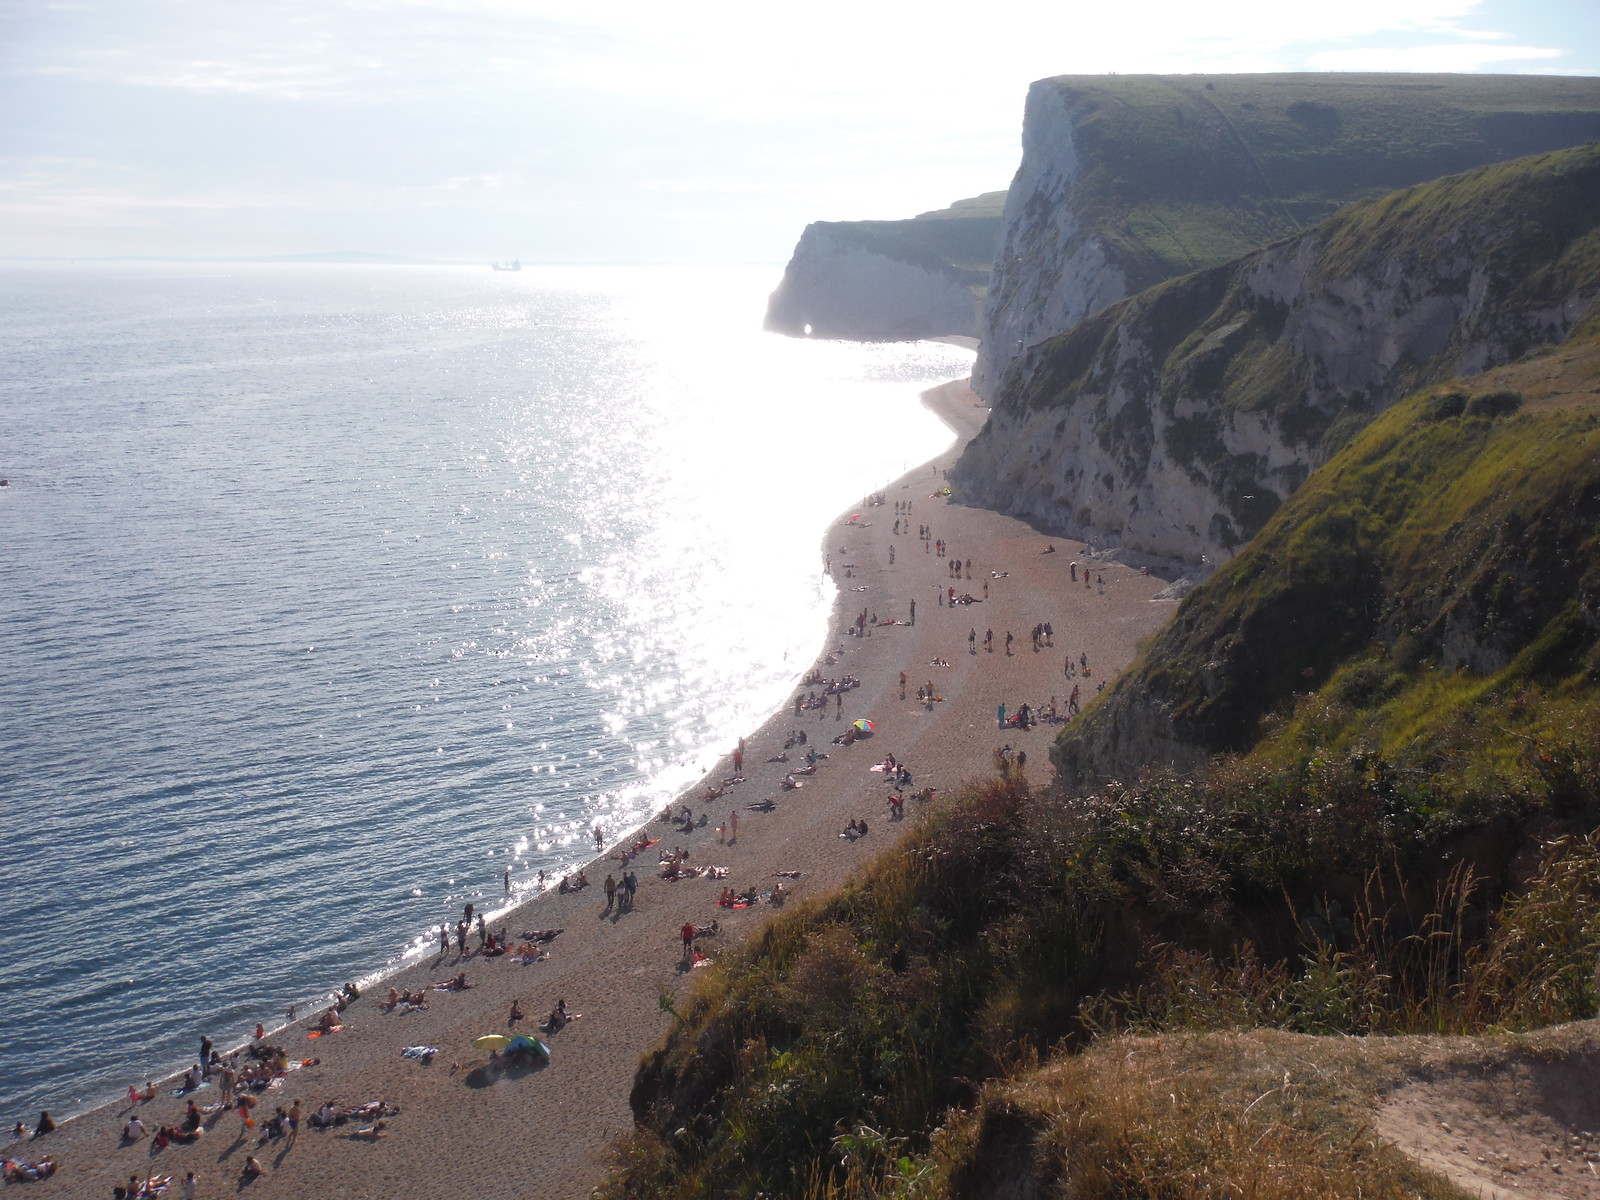 Bat's Head and Hole, from Durdle Beach SWC Walk 54 - Lulworth Cove Circular (via Tyneham and Durdle Door)